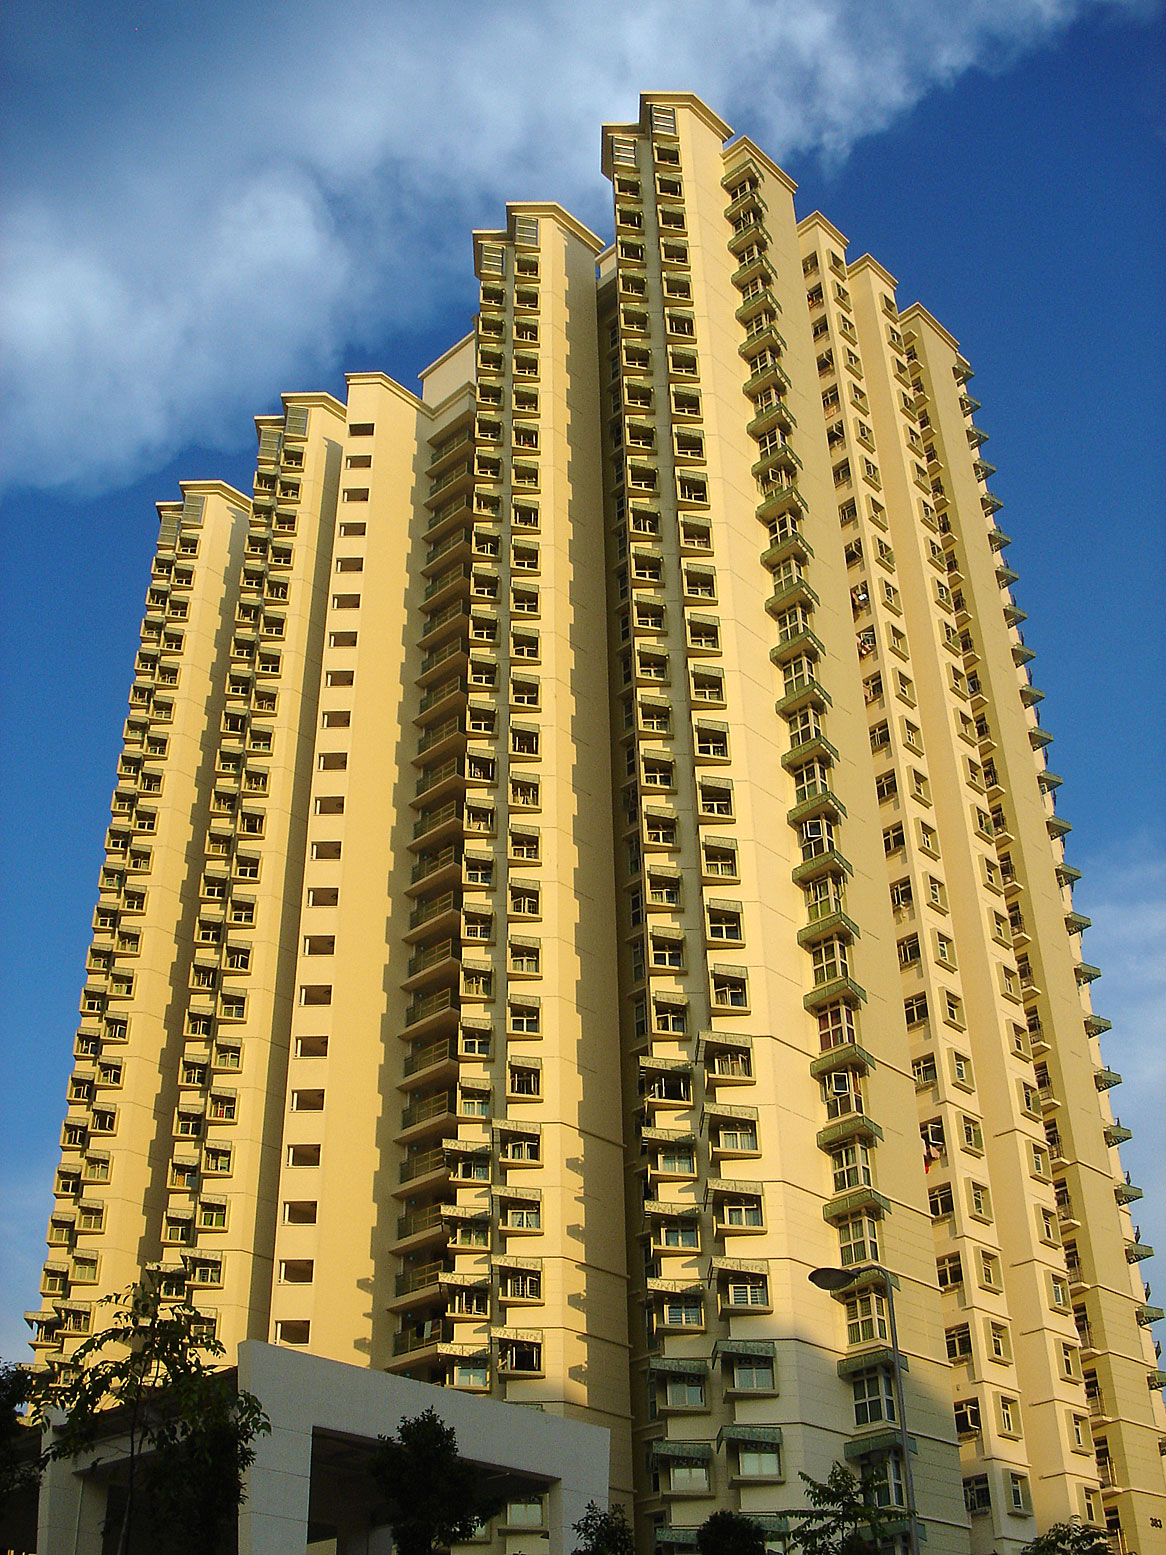 Public housing in Singapore - Wikipedia